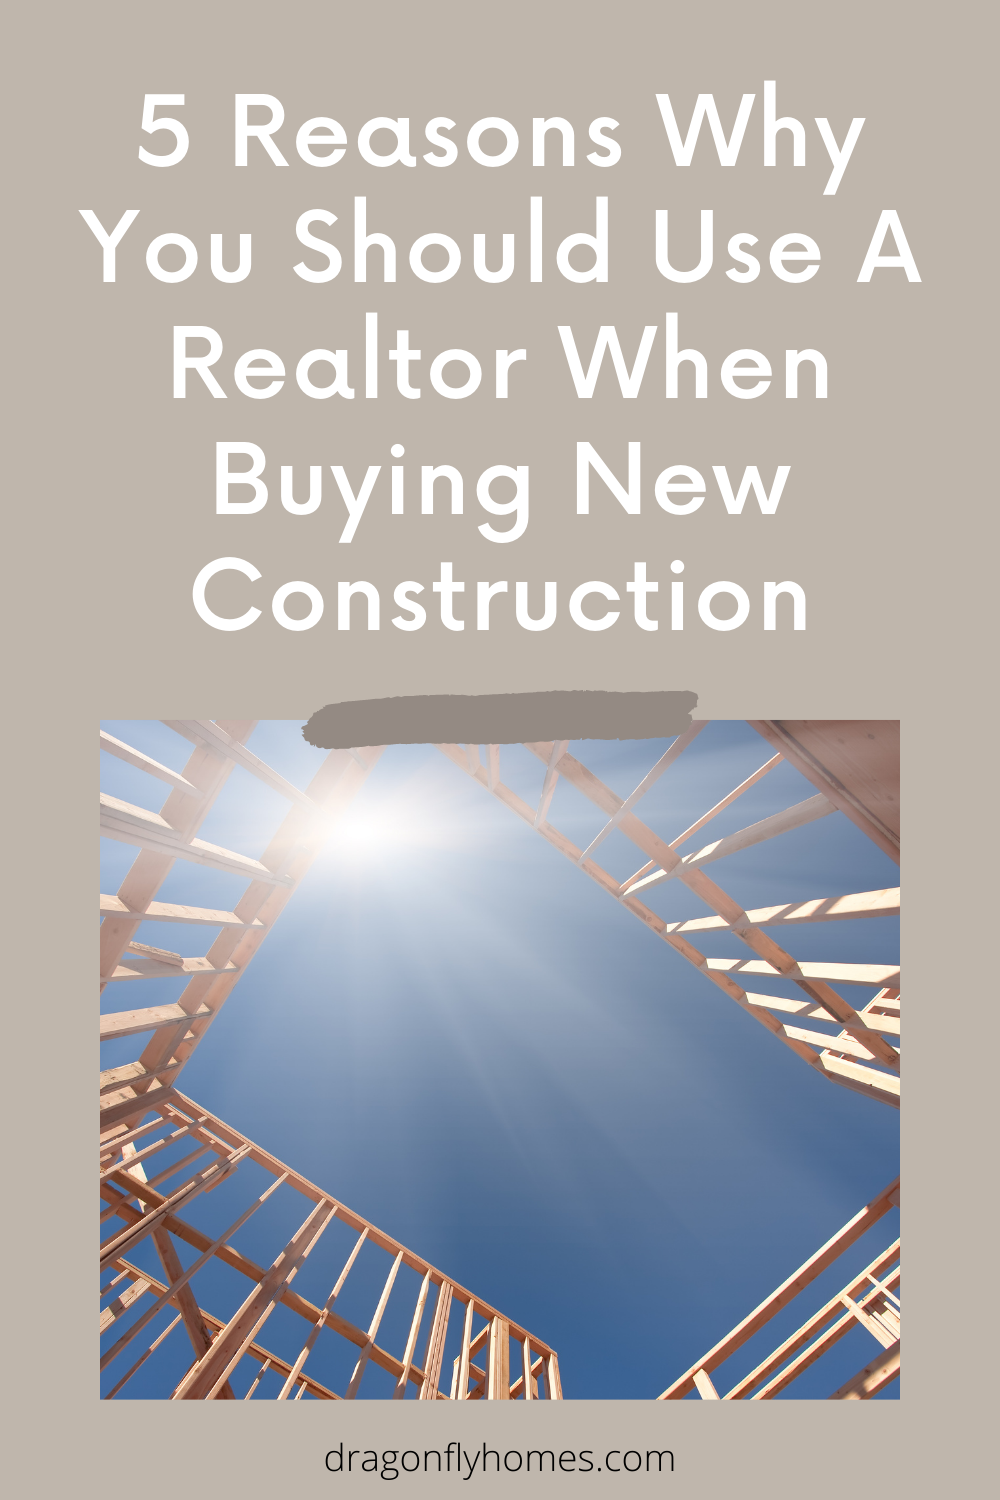 5 Reasons Why You Should Use A Realtor When Buying New Construction